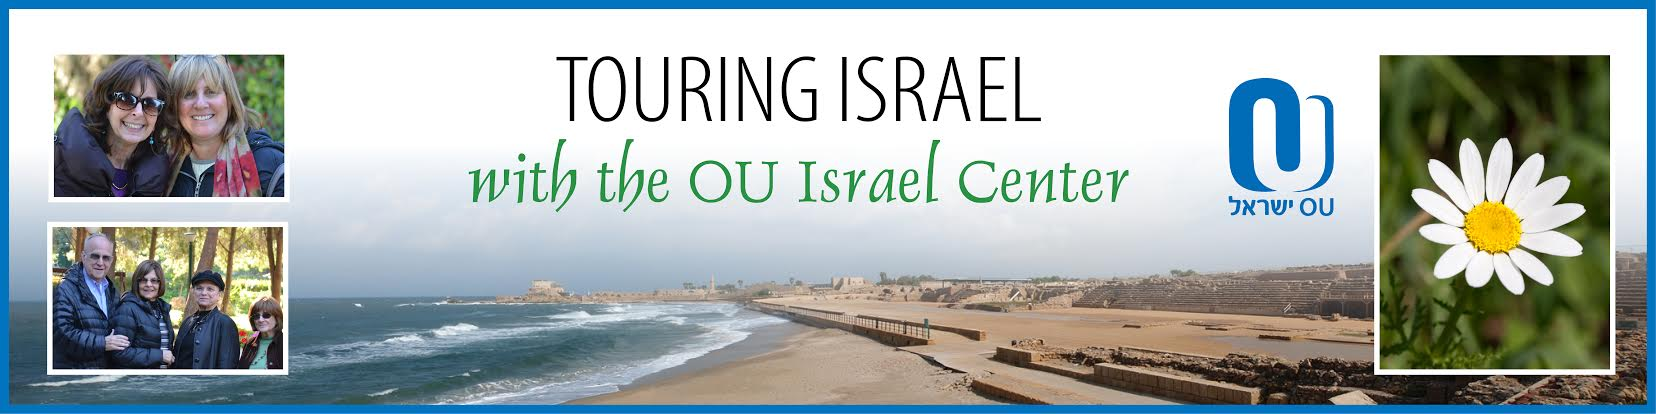 Travel with OU Israel